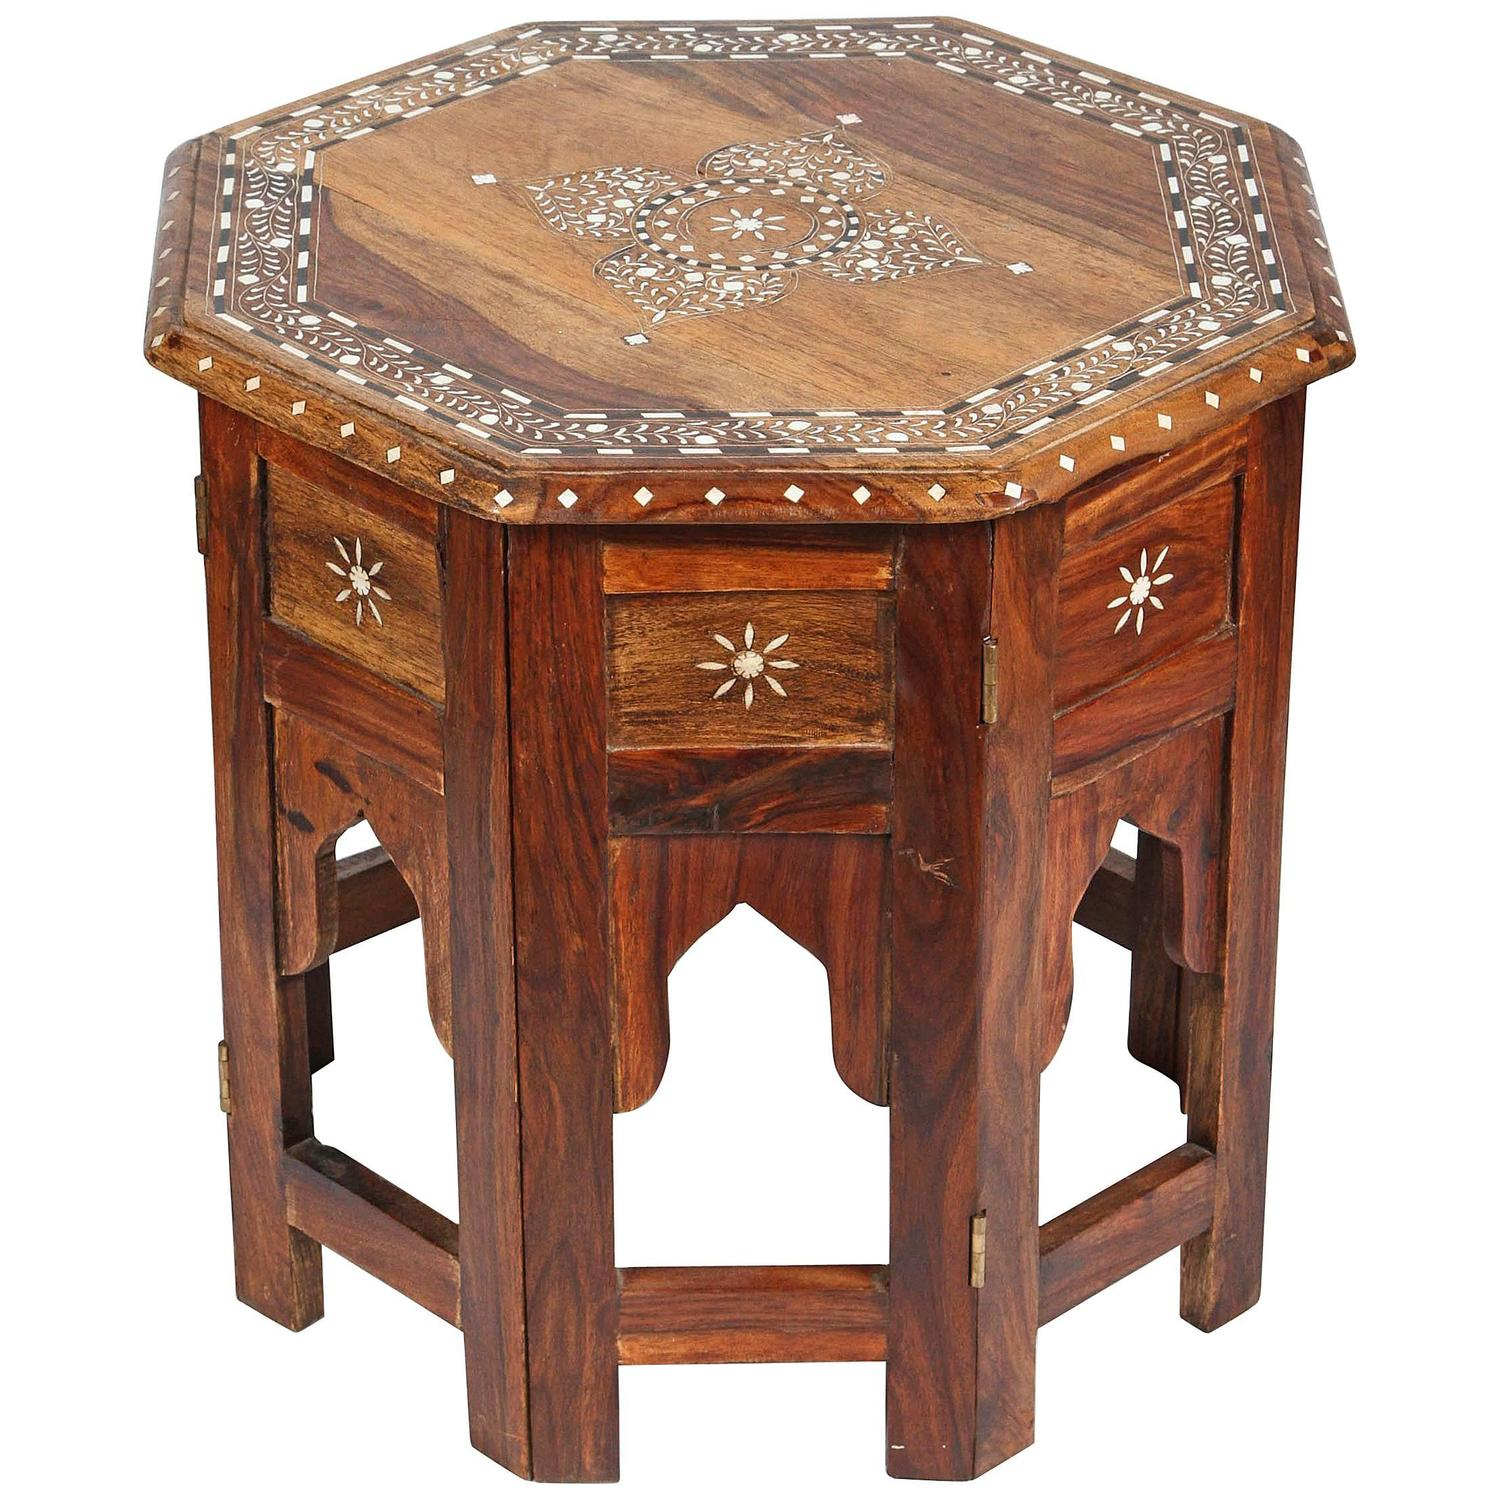 Anglo Indian Tables 120 For Sale at 1stdibs